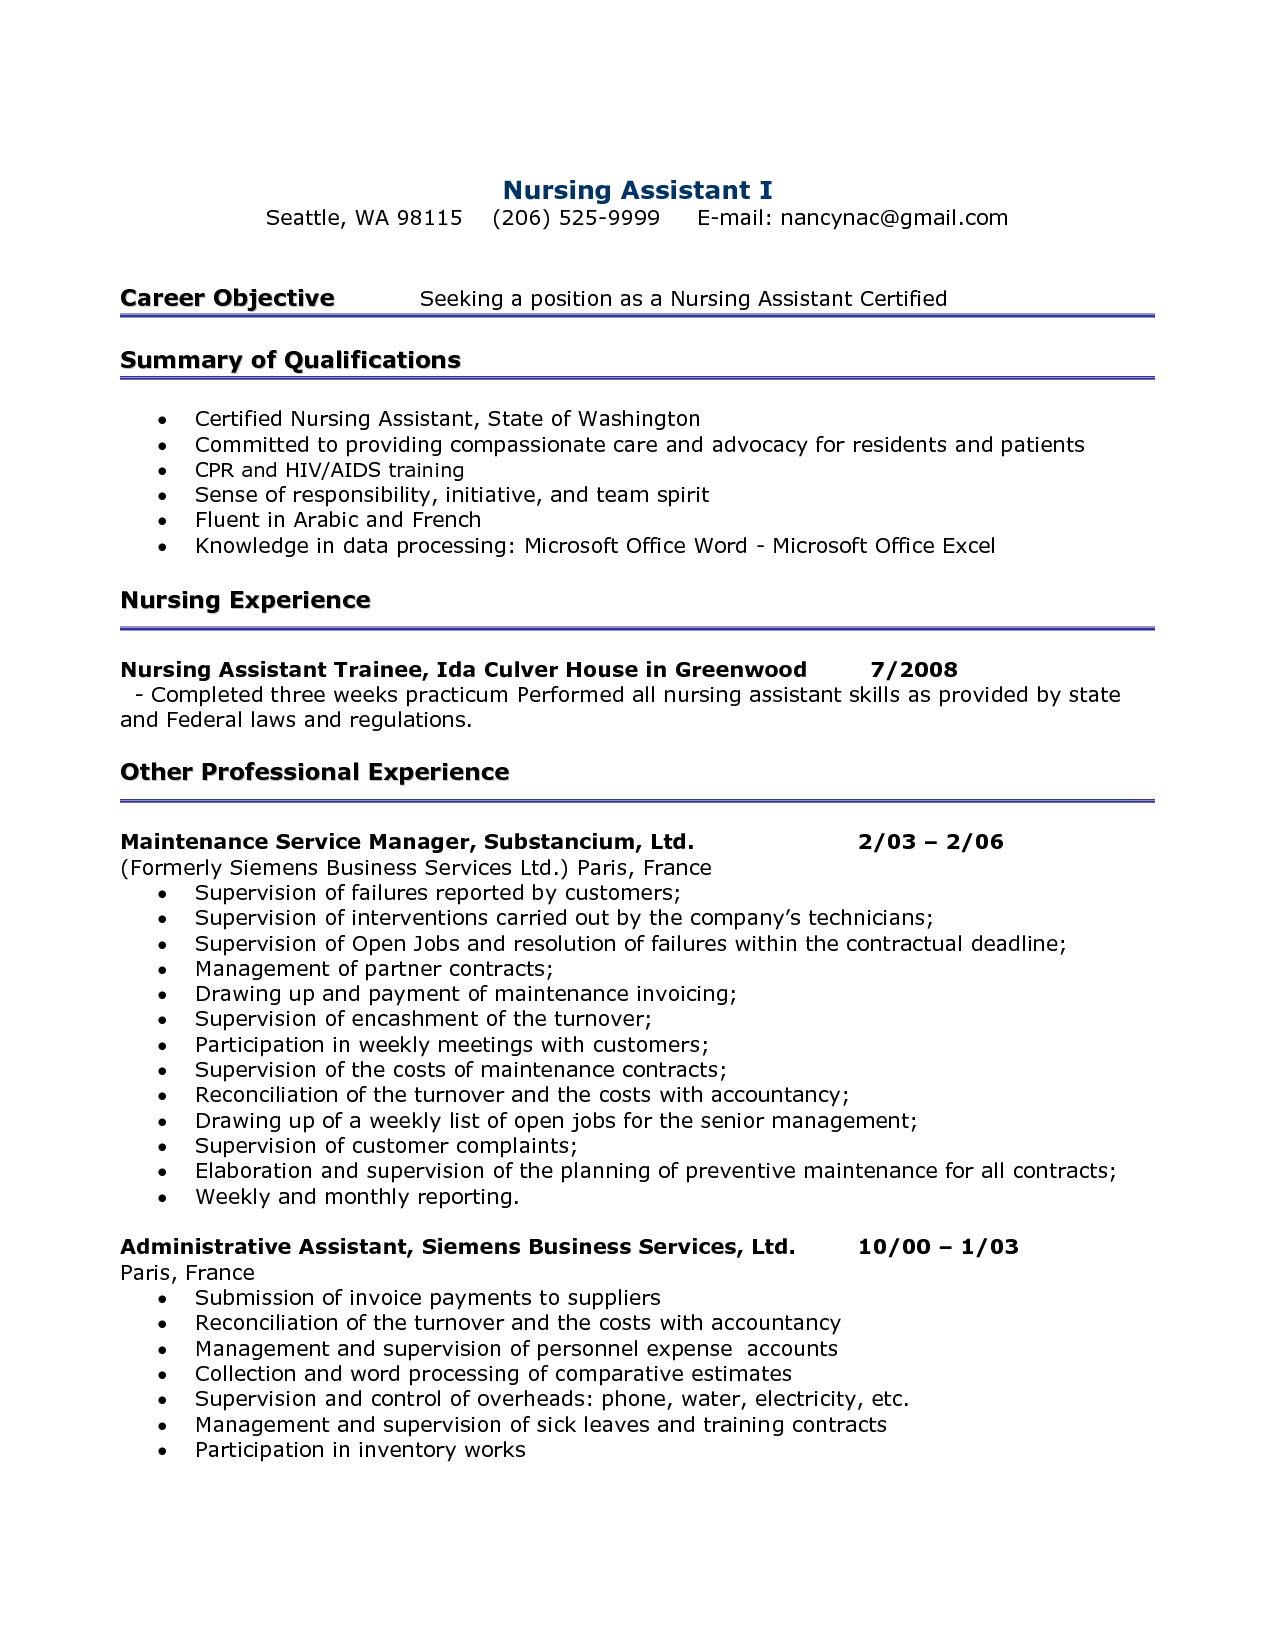 Certified Nursing Assistant Resume httpwwwresumecareerinfo